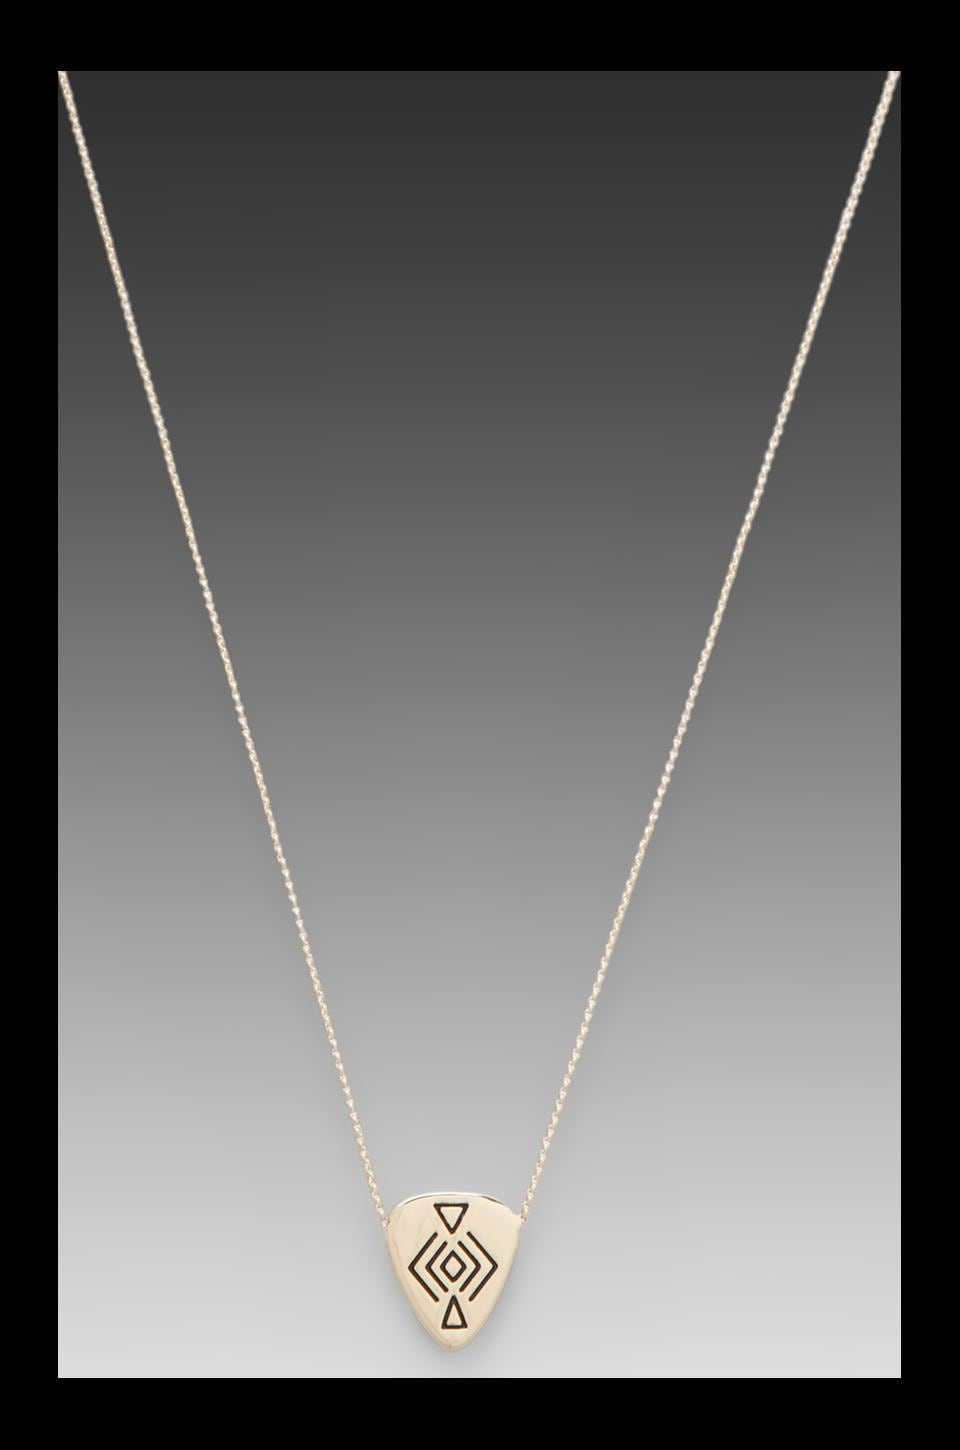 House of Harlow Mini Plectra Necklace in Gold